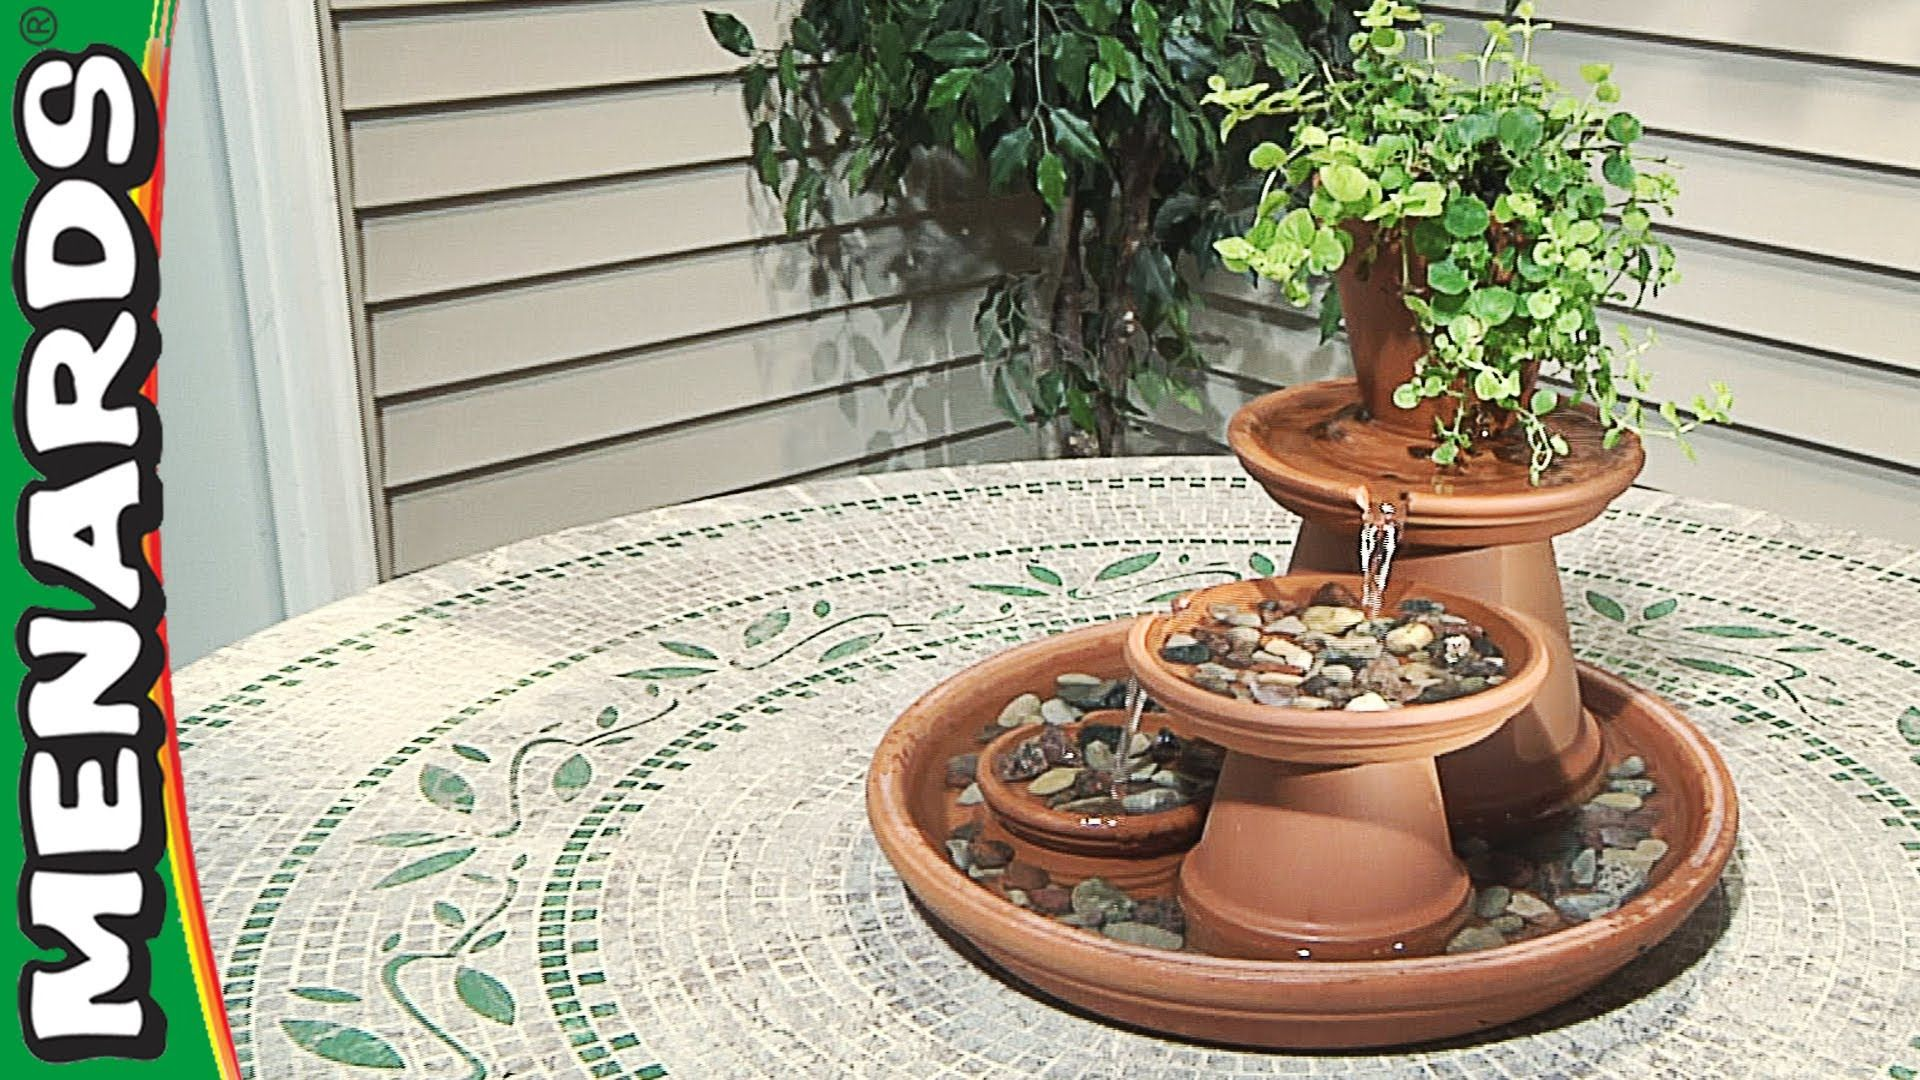 Do it yourself water features - 17 Best Images About Water Features On Pinterest Diy Water Fountain Ponds And Water Features